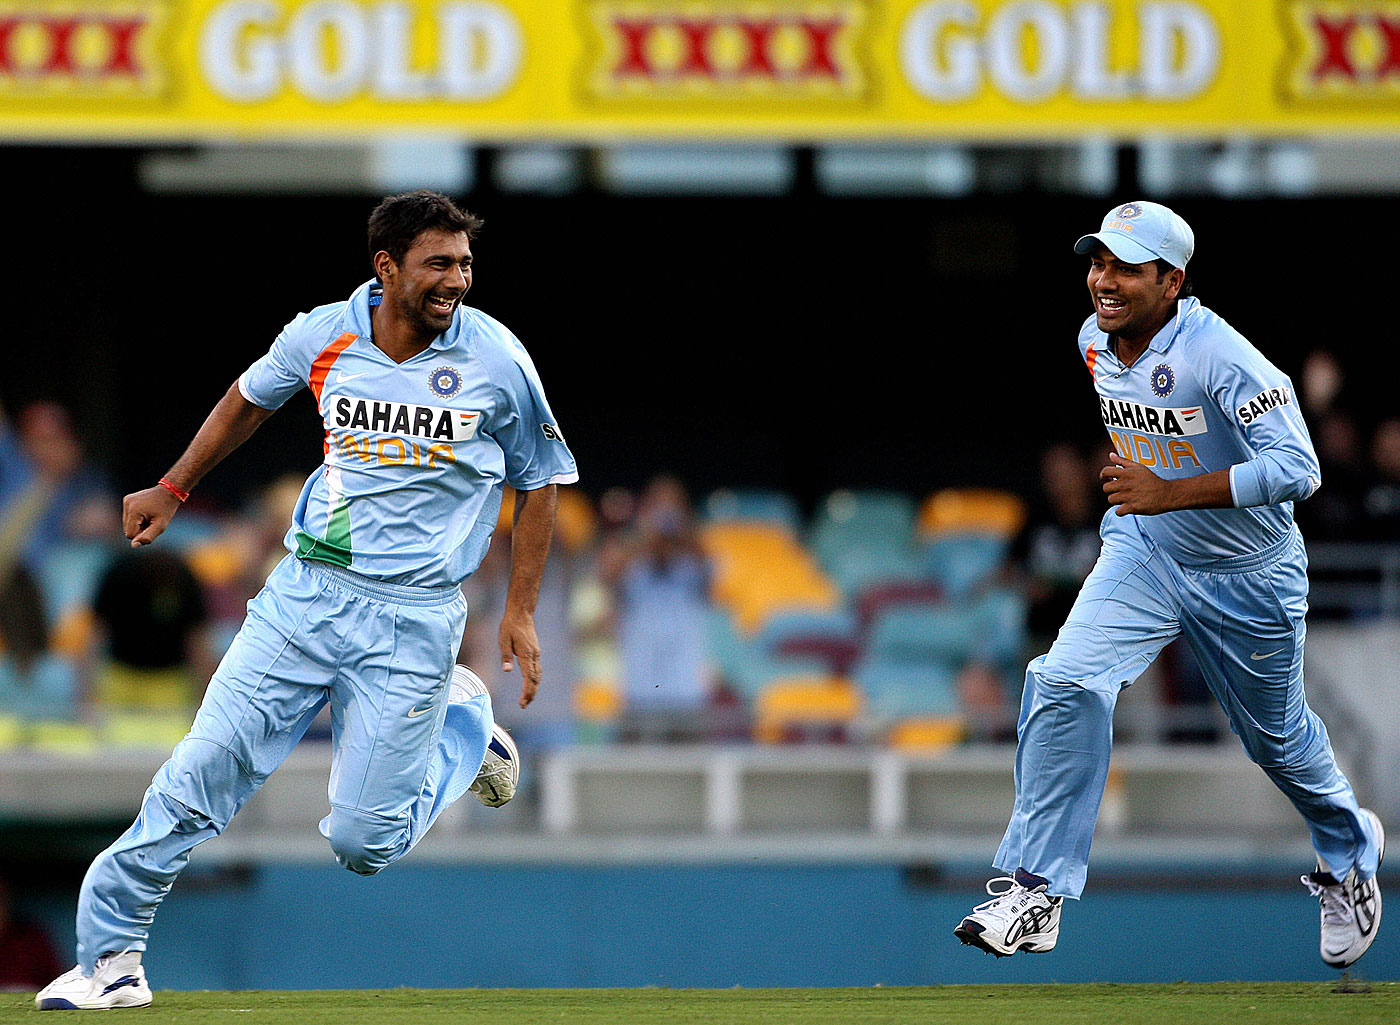 The spell of 4 for 46 at the Gabba won Praveen Kumar the Man-of-the-Match award and with it the 2008 CB Series for India